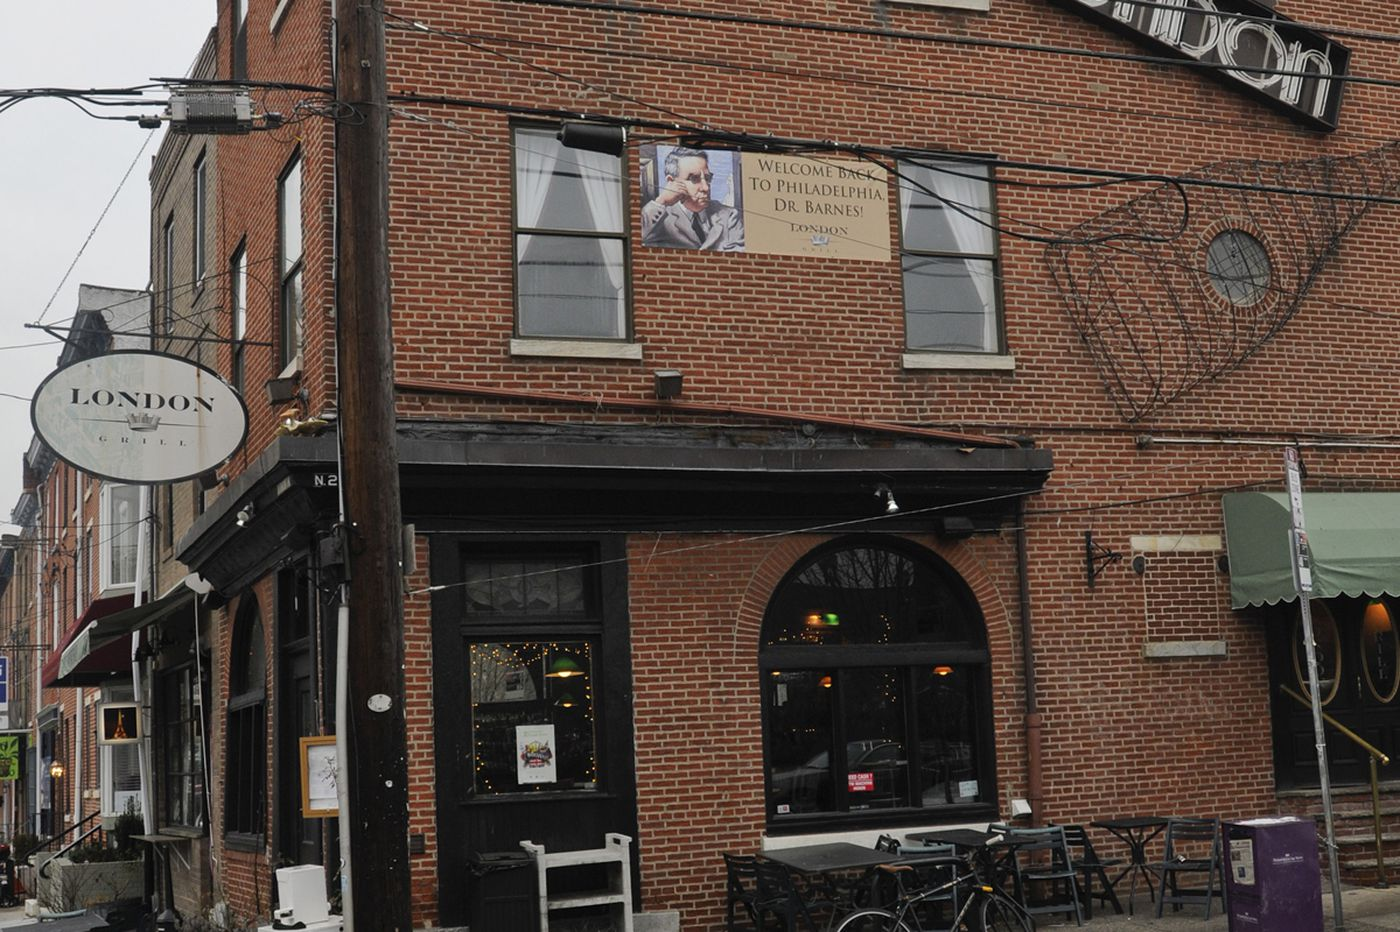 London Grill, among the oldest restaurants in Fairmount, has a sale pending